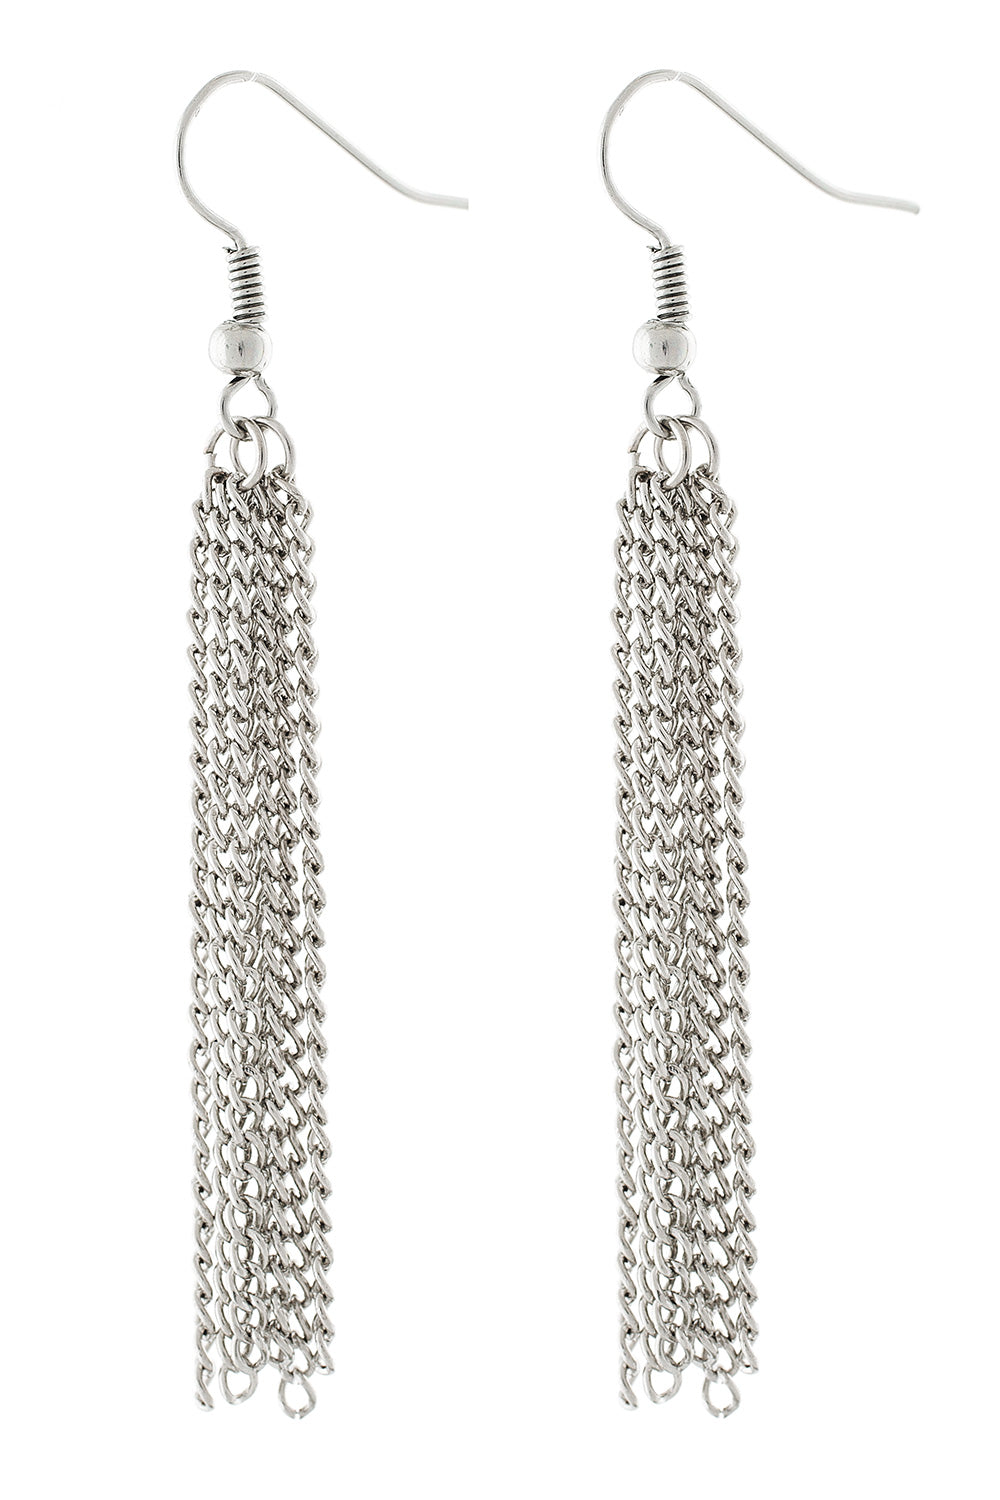 Type 2 Liquid Silver Earrings